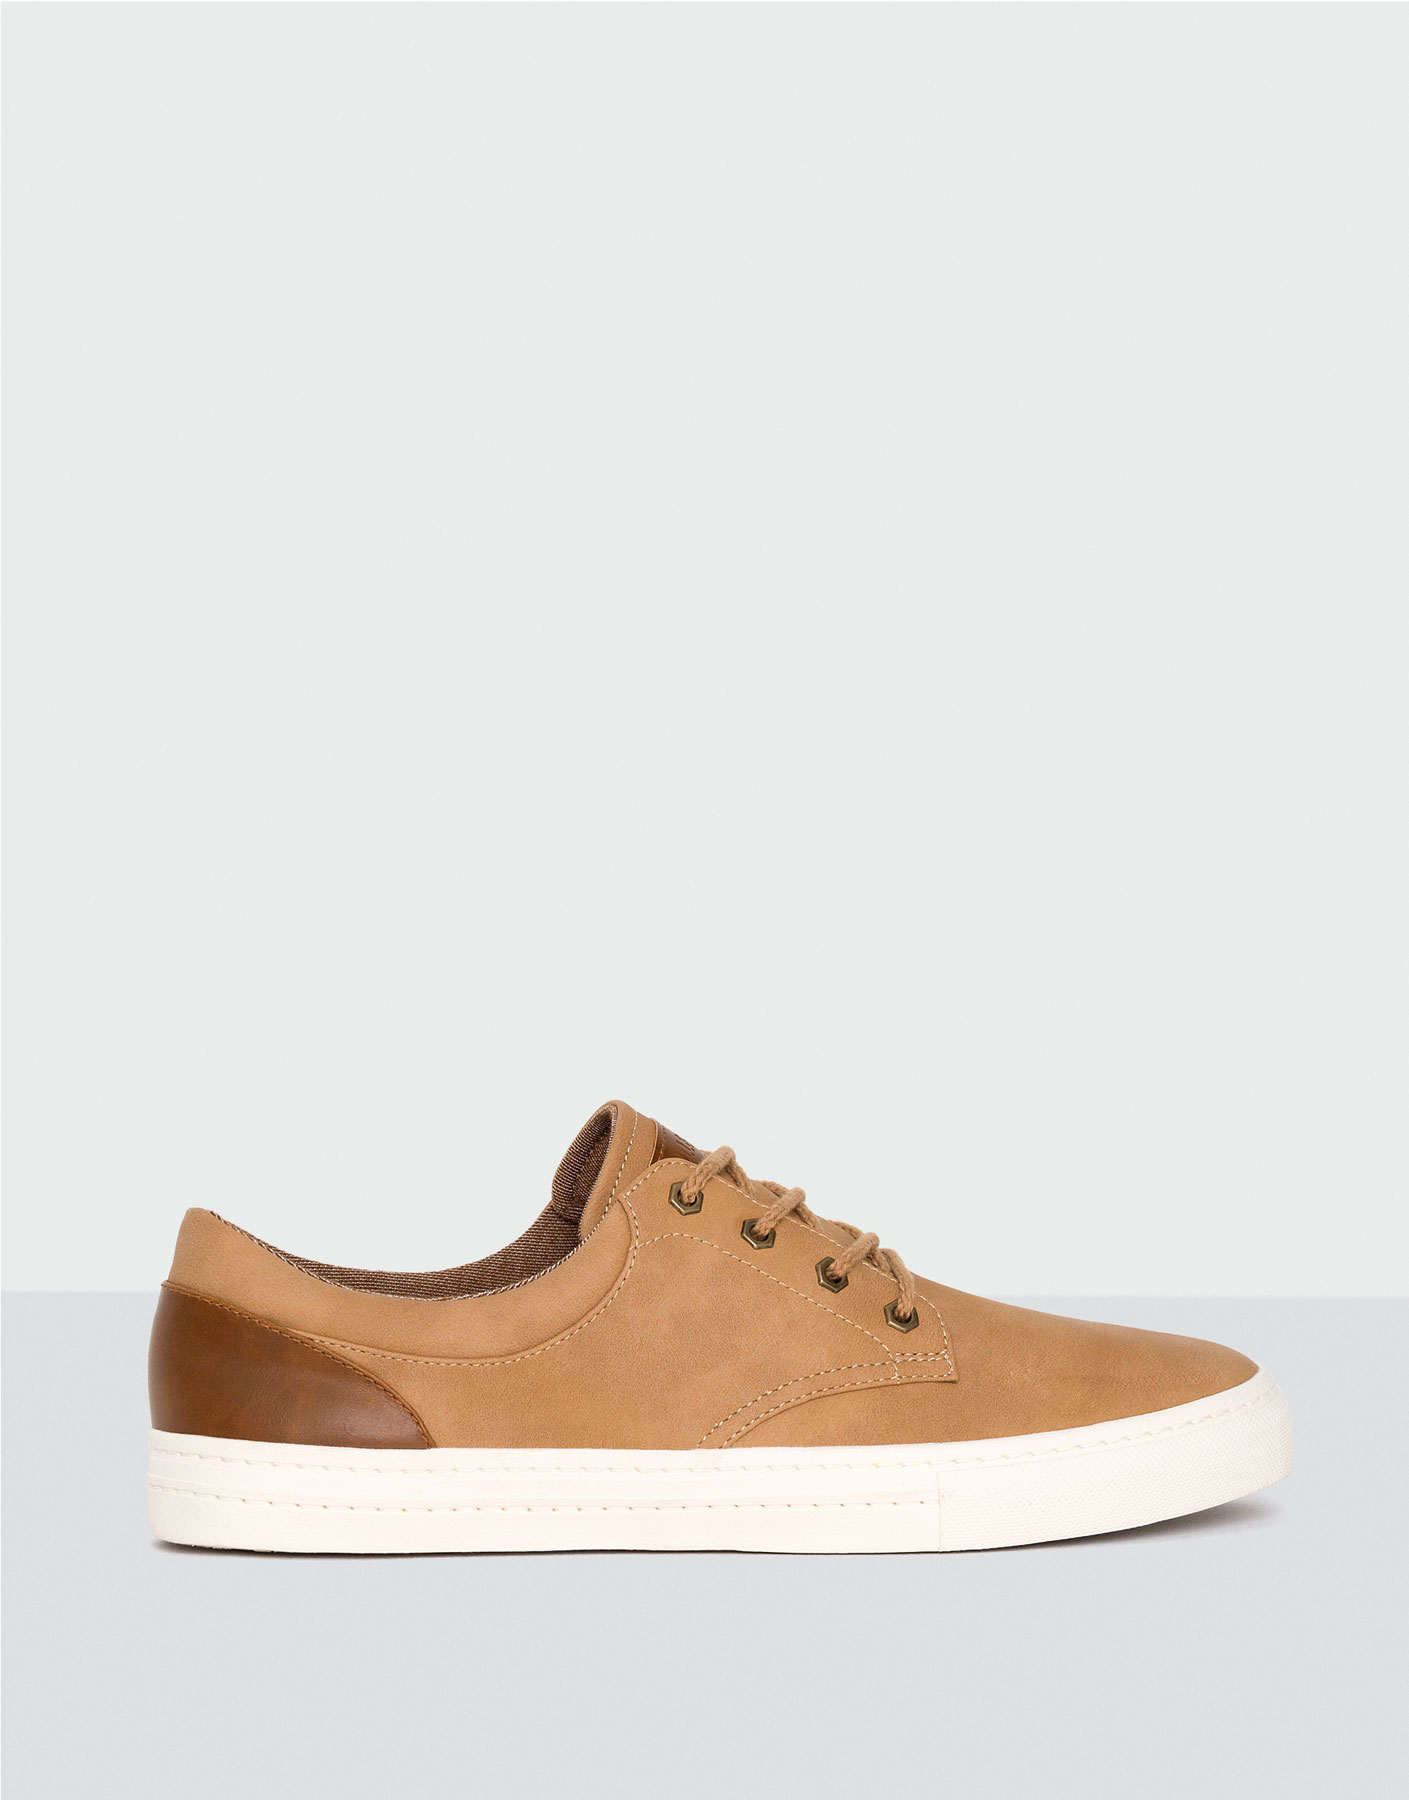 Formal plimsolls with trim